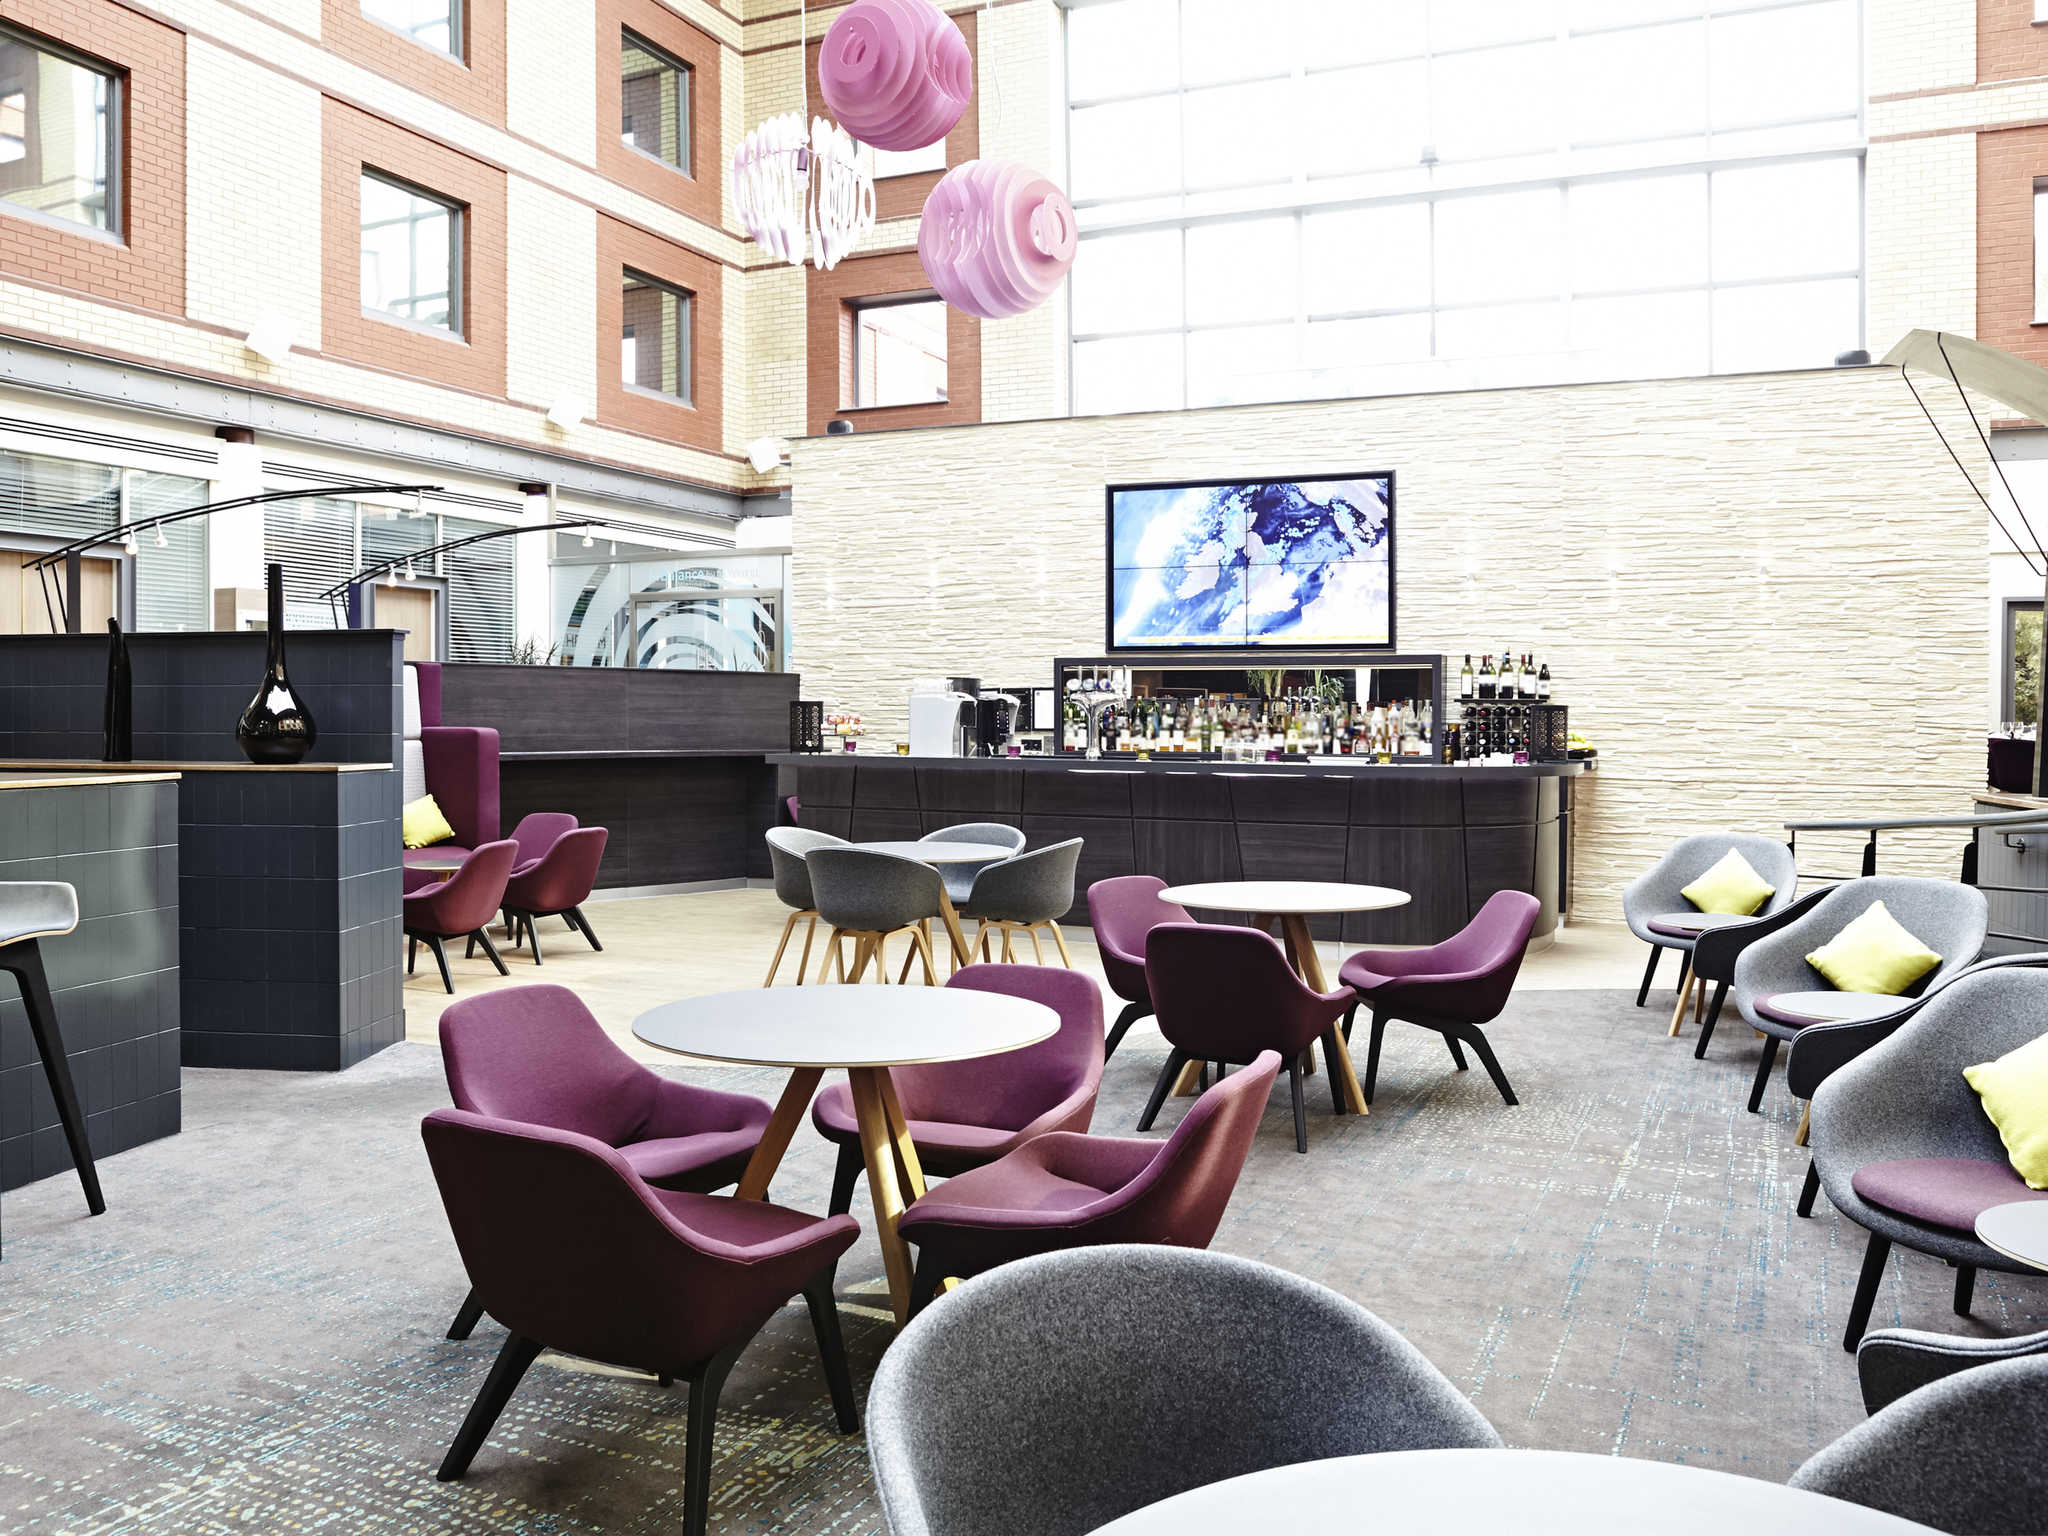 Hotel – Novotel London Heathrow Airport - M4 Jct 4